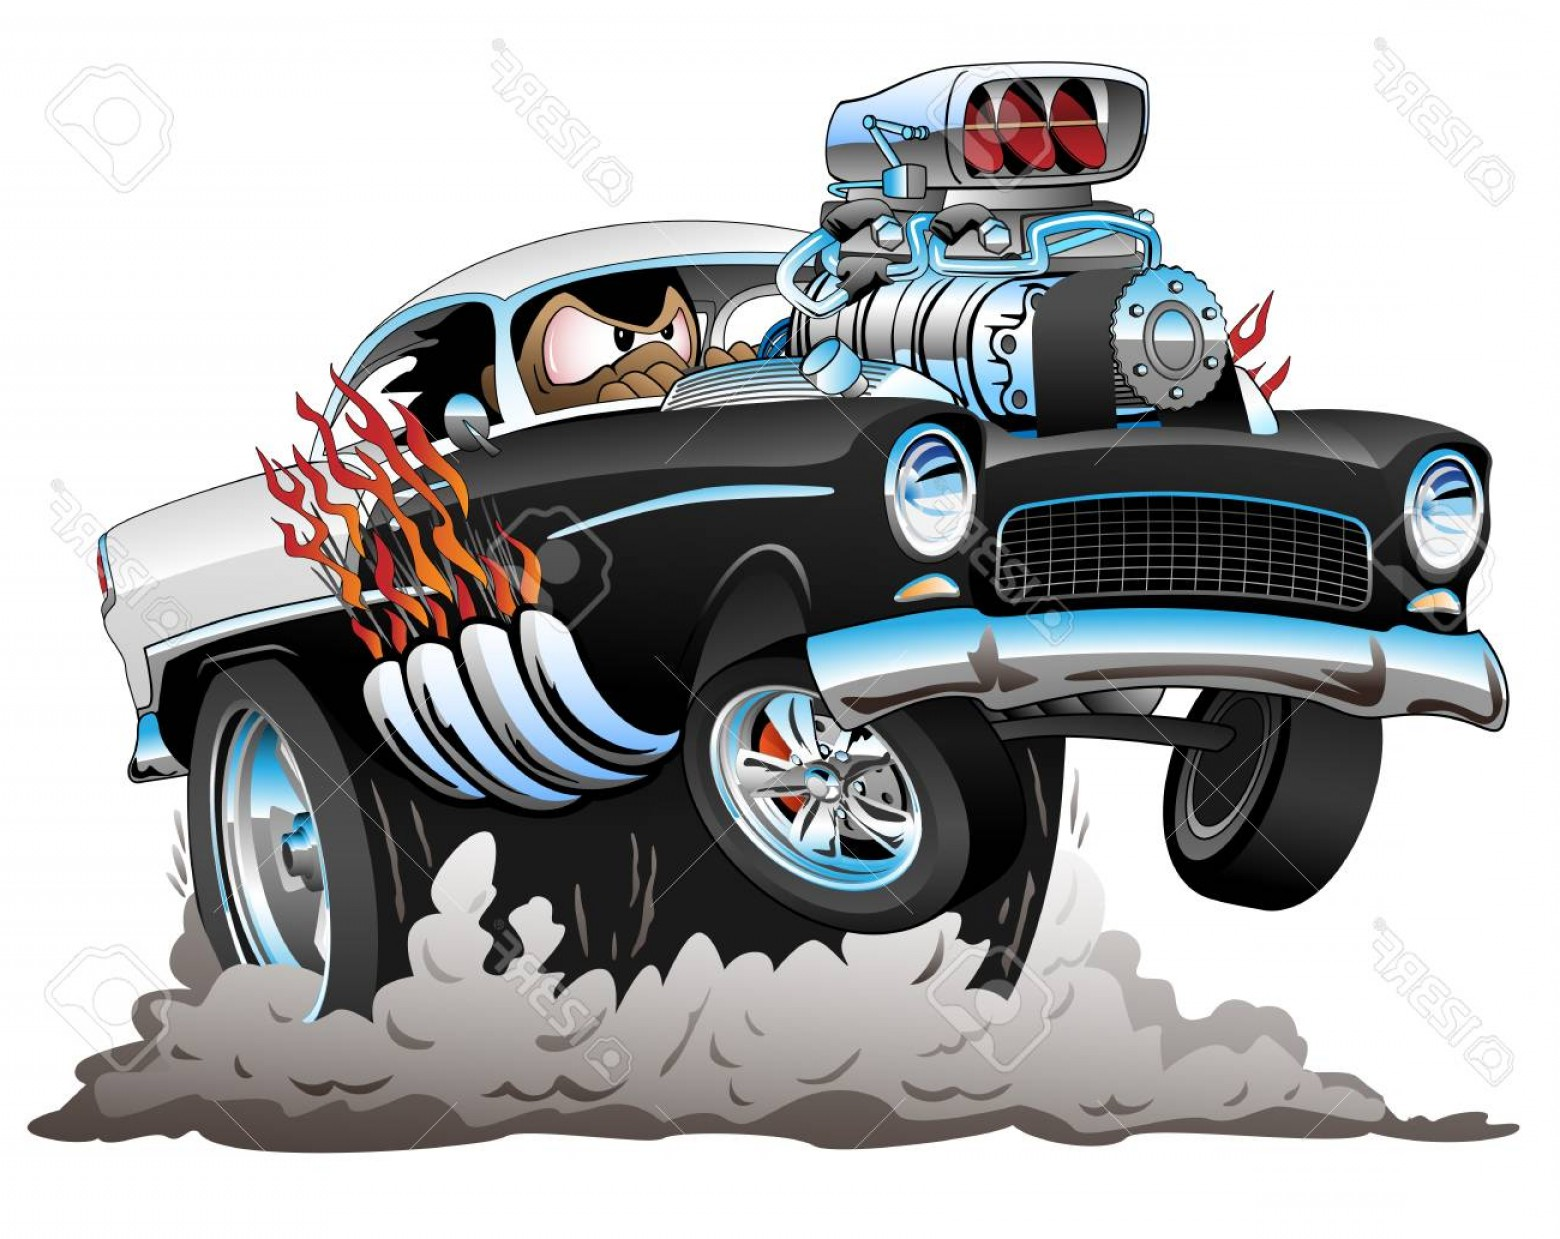 Vector Hot Rod Engines: Photostock Vector Classic American Fifties Style Hot Rod Funny Car Cartoon With Big Engine Flames Smoking Tires Poppin